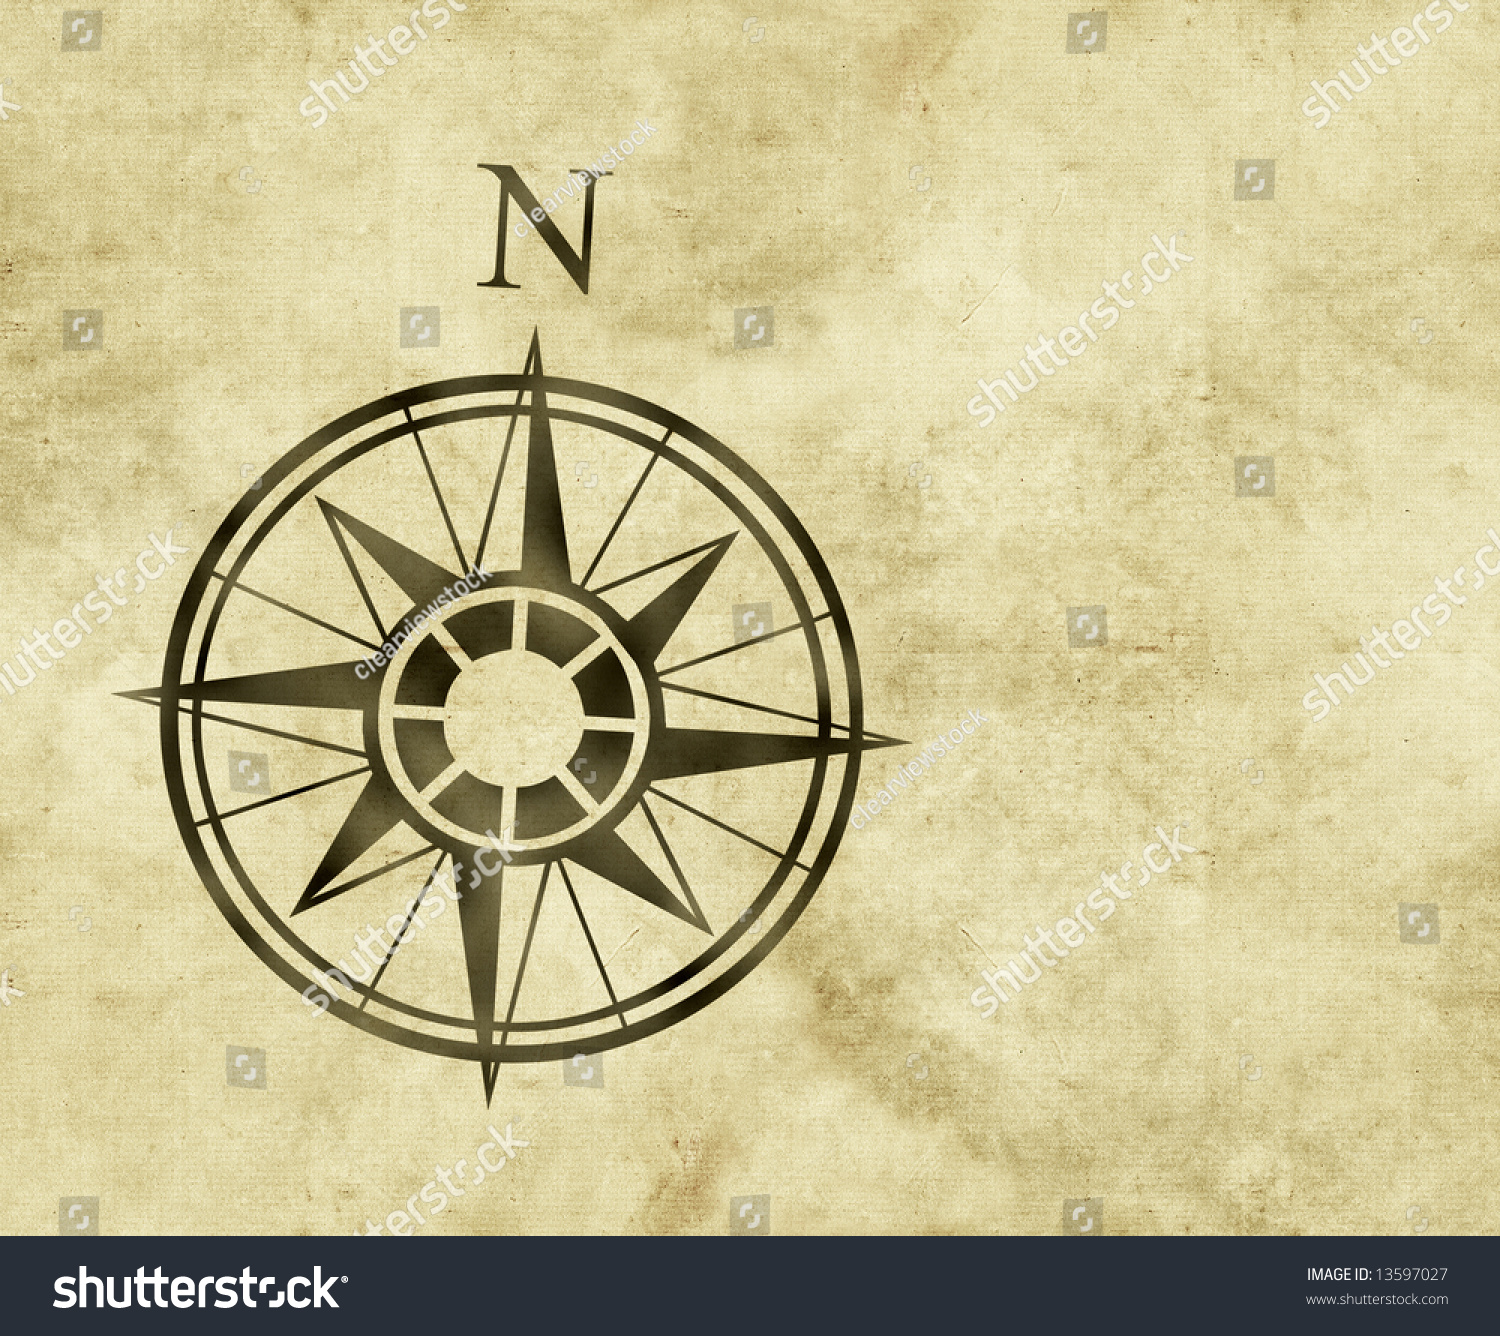 Great north arrow compass on old stock illustration 13597027 great north arrow and compass on old parchment map with copy space biocorpaavc